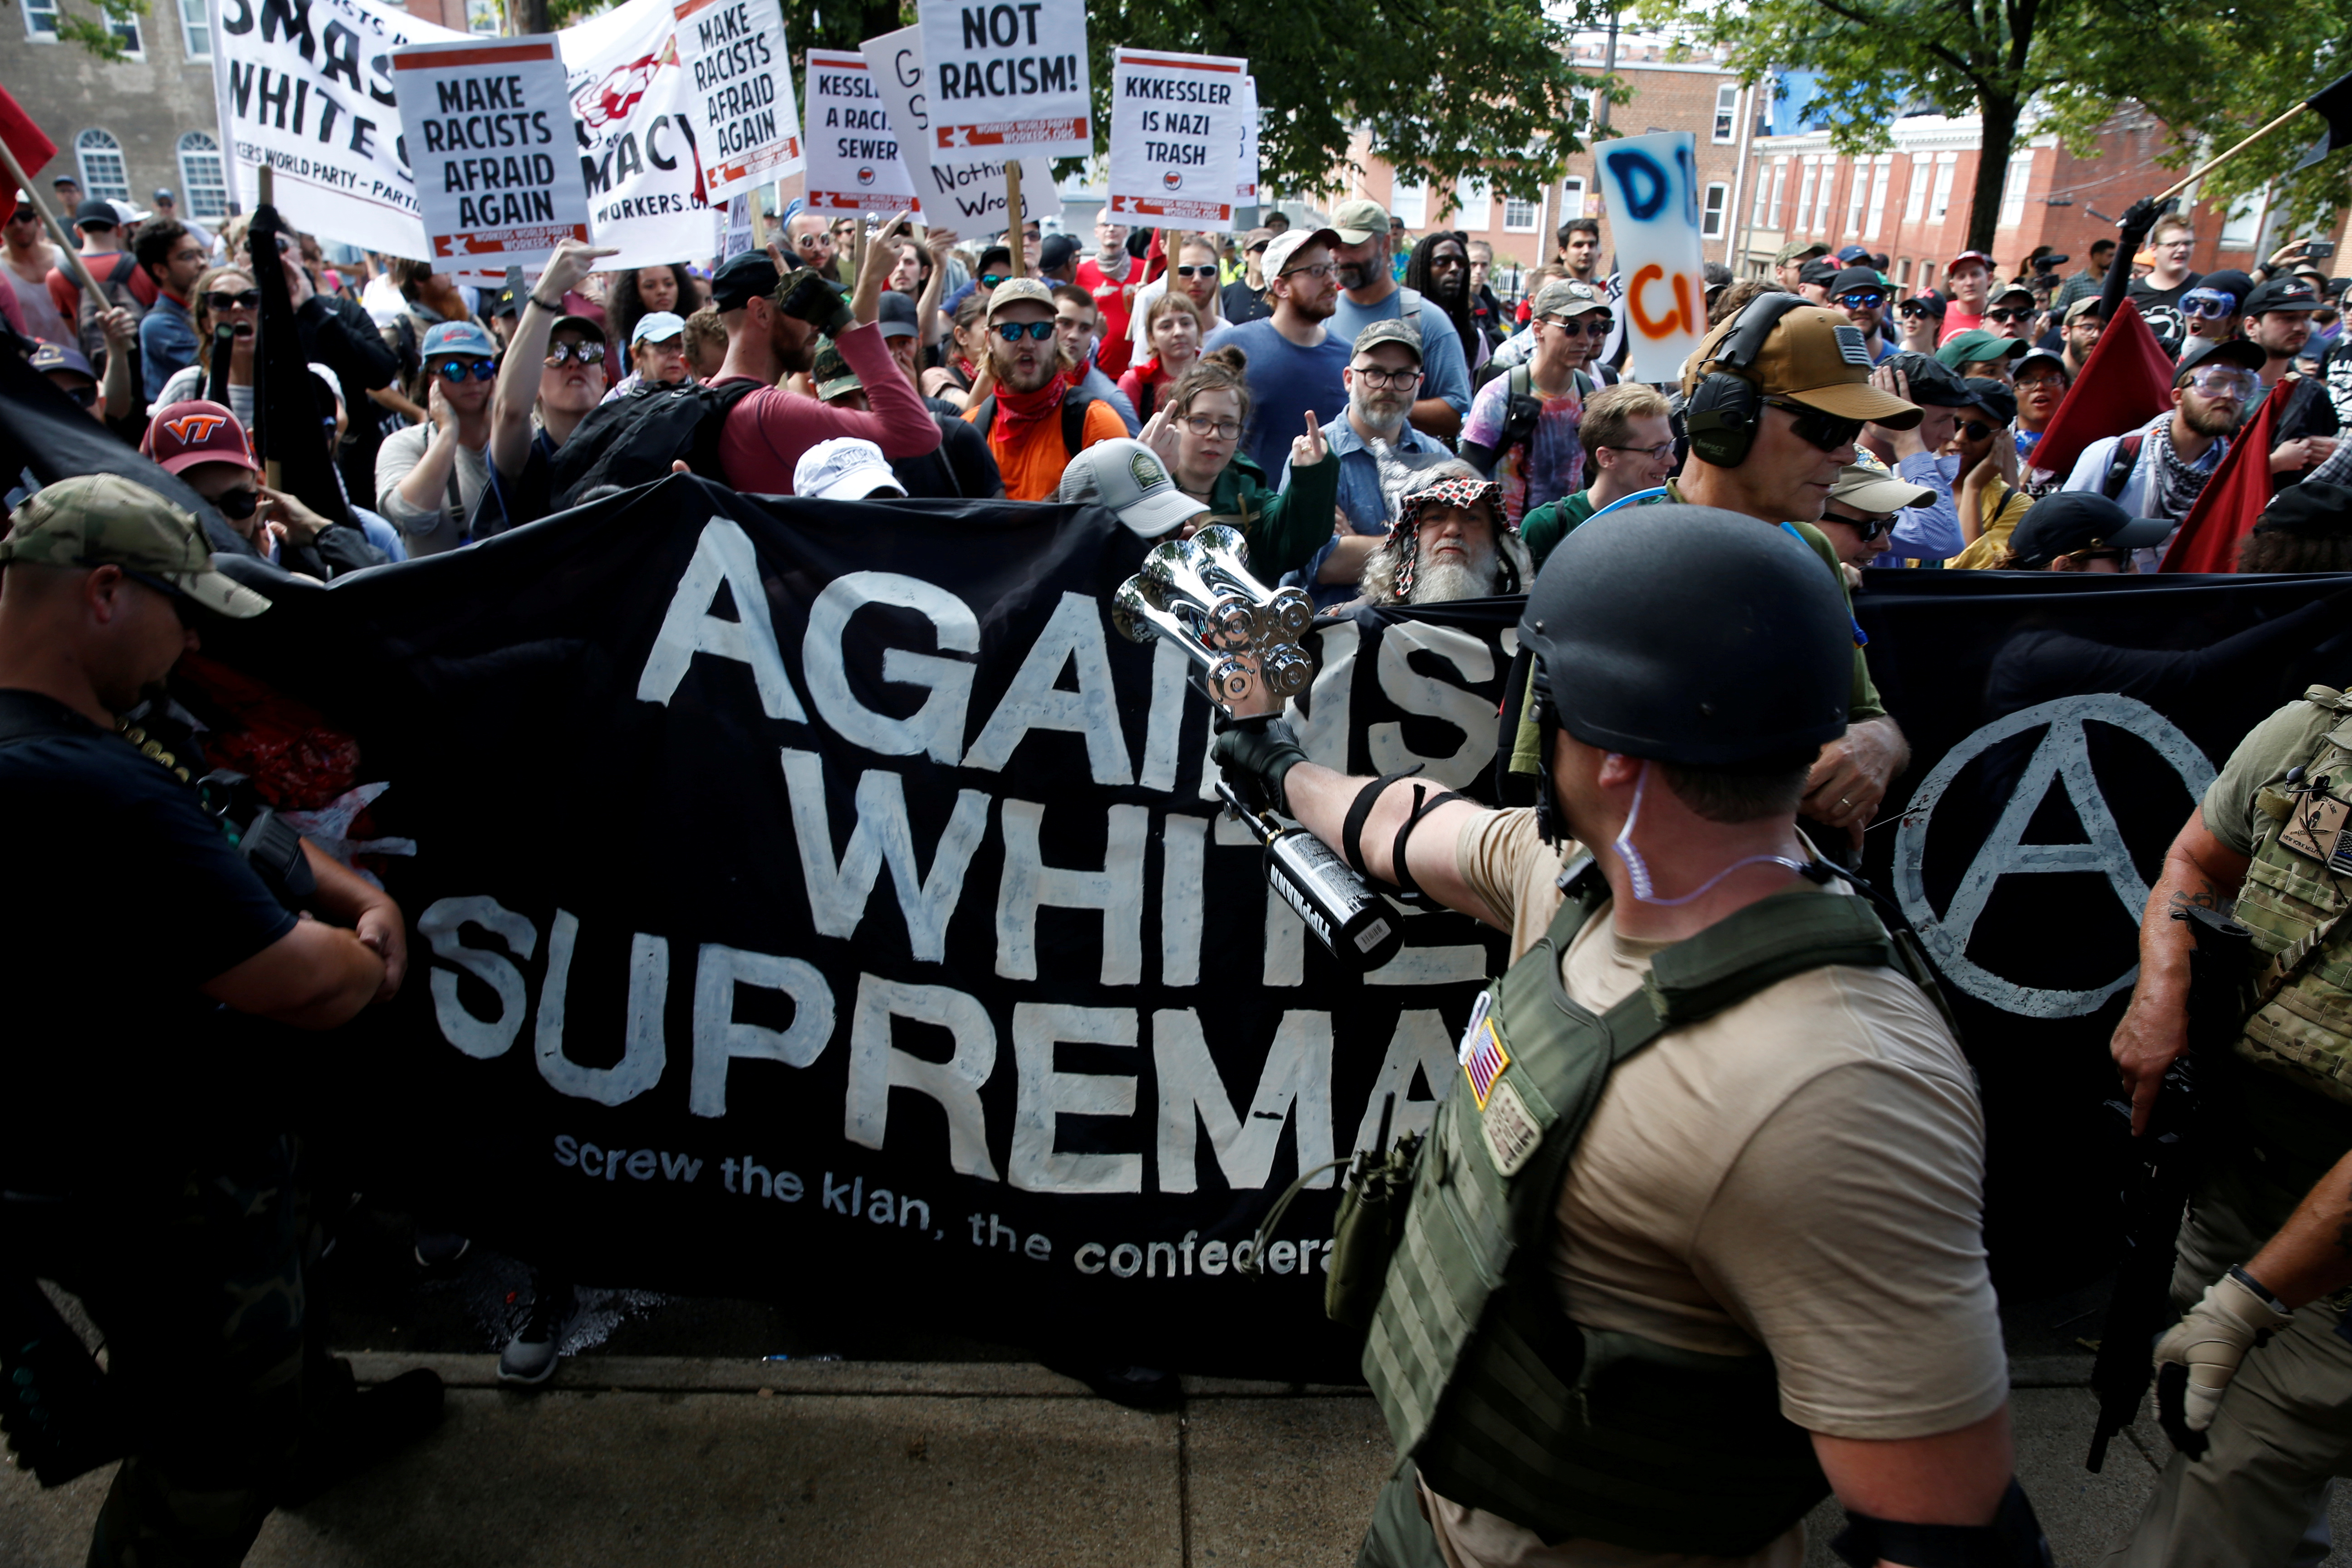 White nationalists are met by a group of counter-protesters in Charlottesville, Virginia, August 12, 2017.